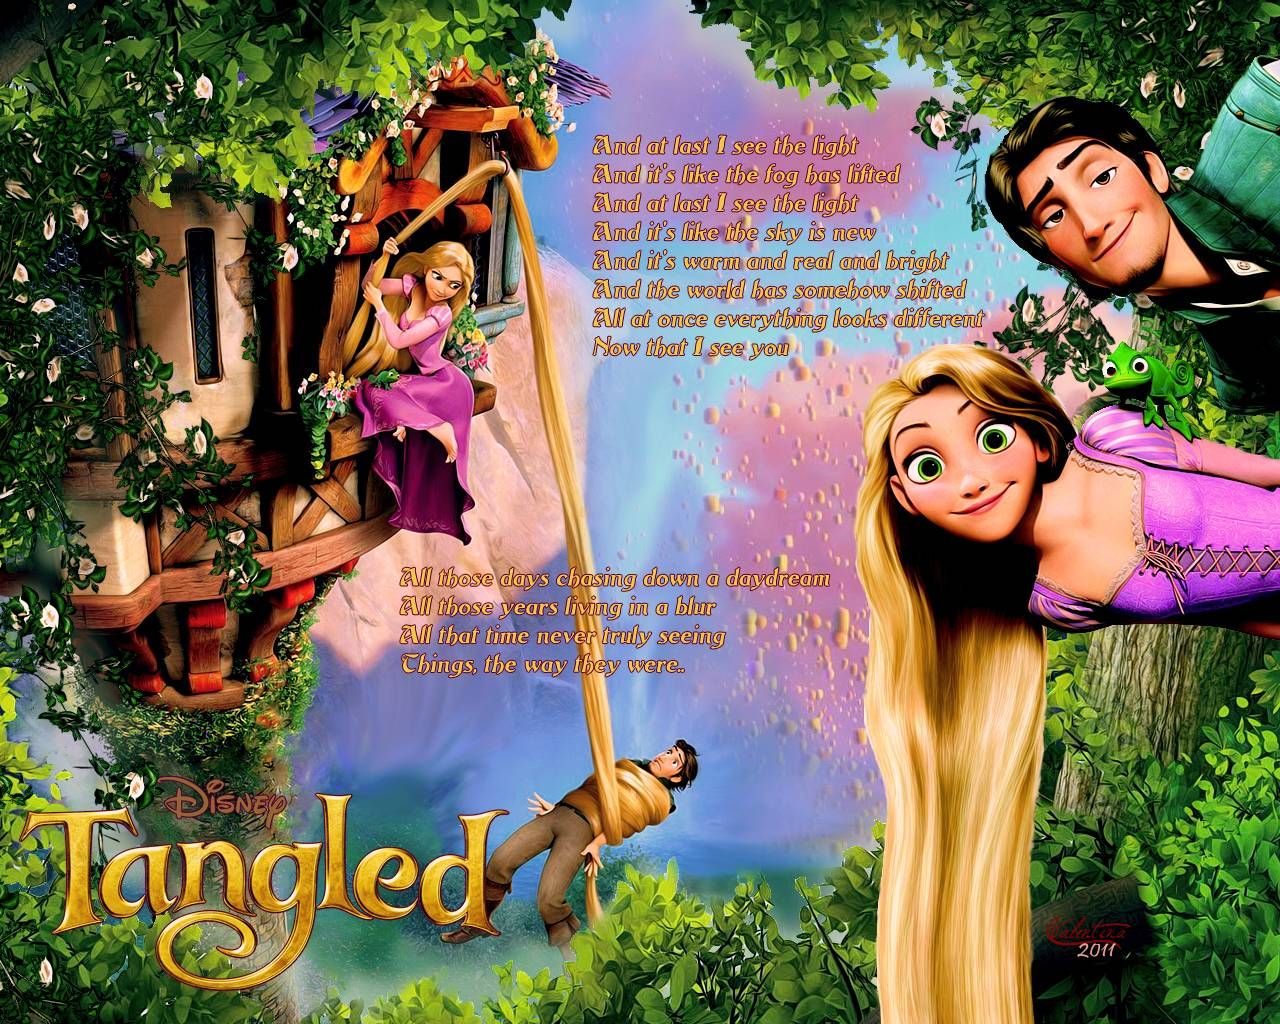 tangled movie wallpapers hd wallpapers | hd wallpapers | pinterest